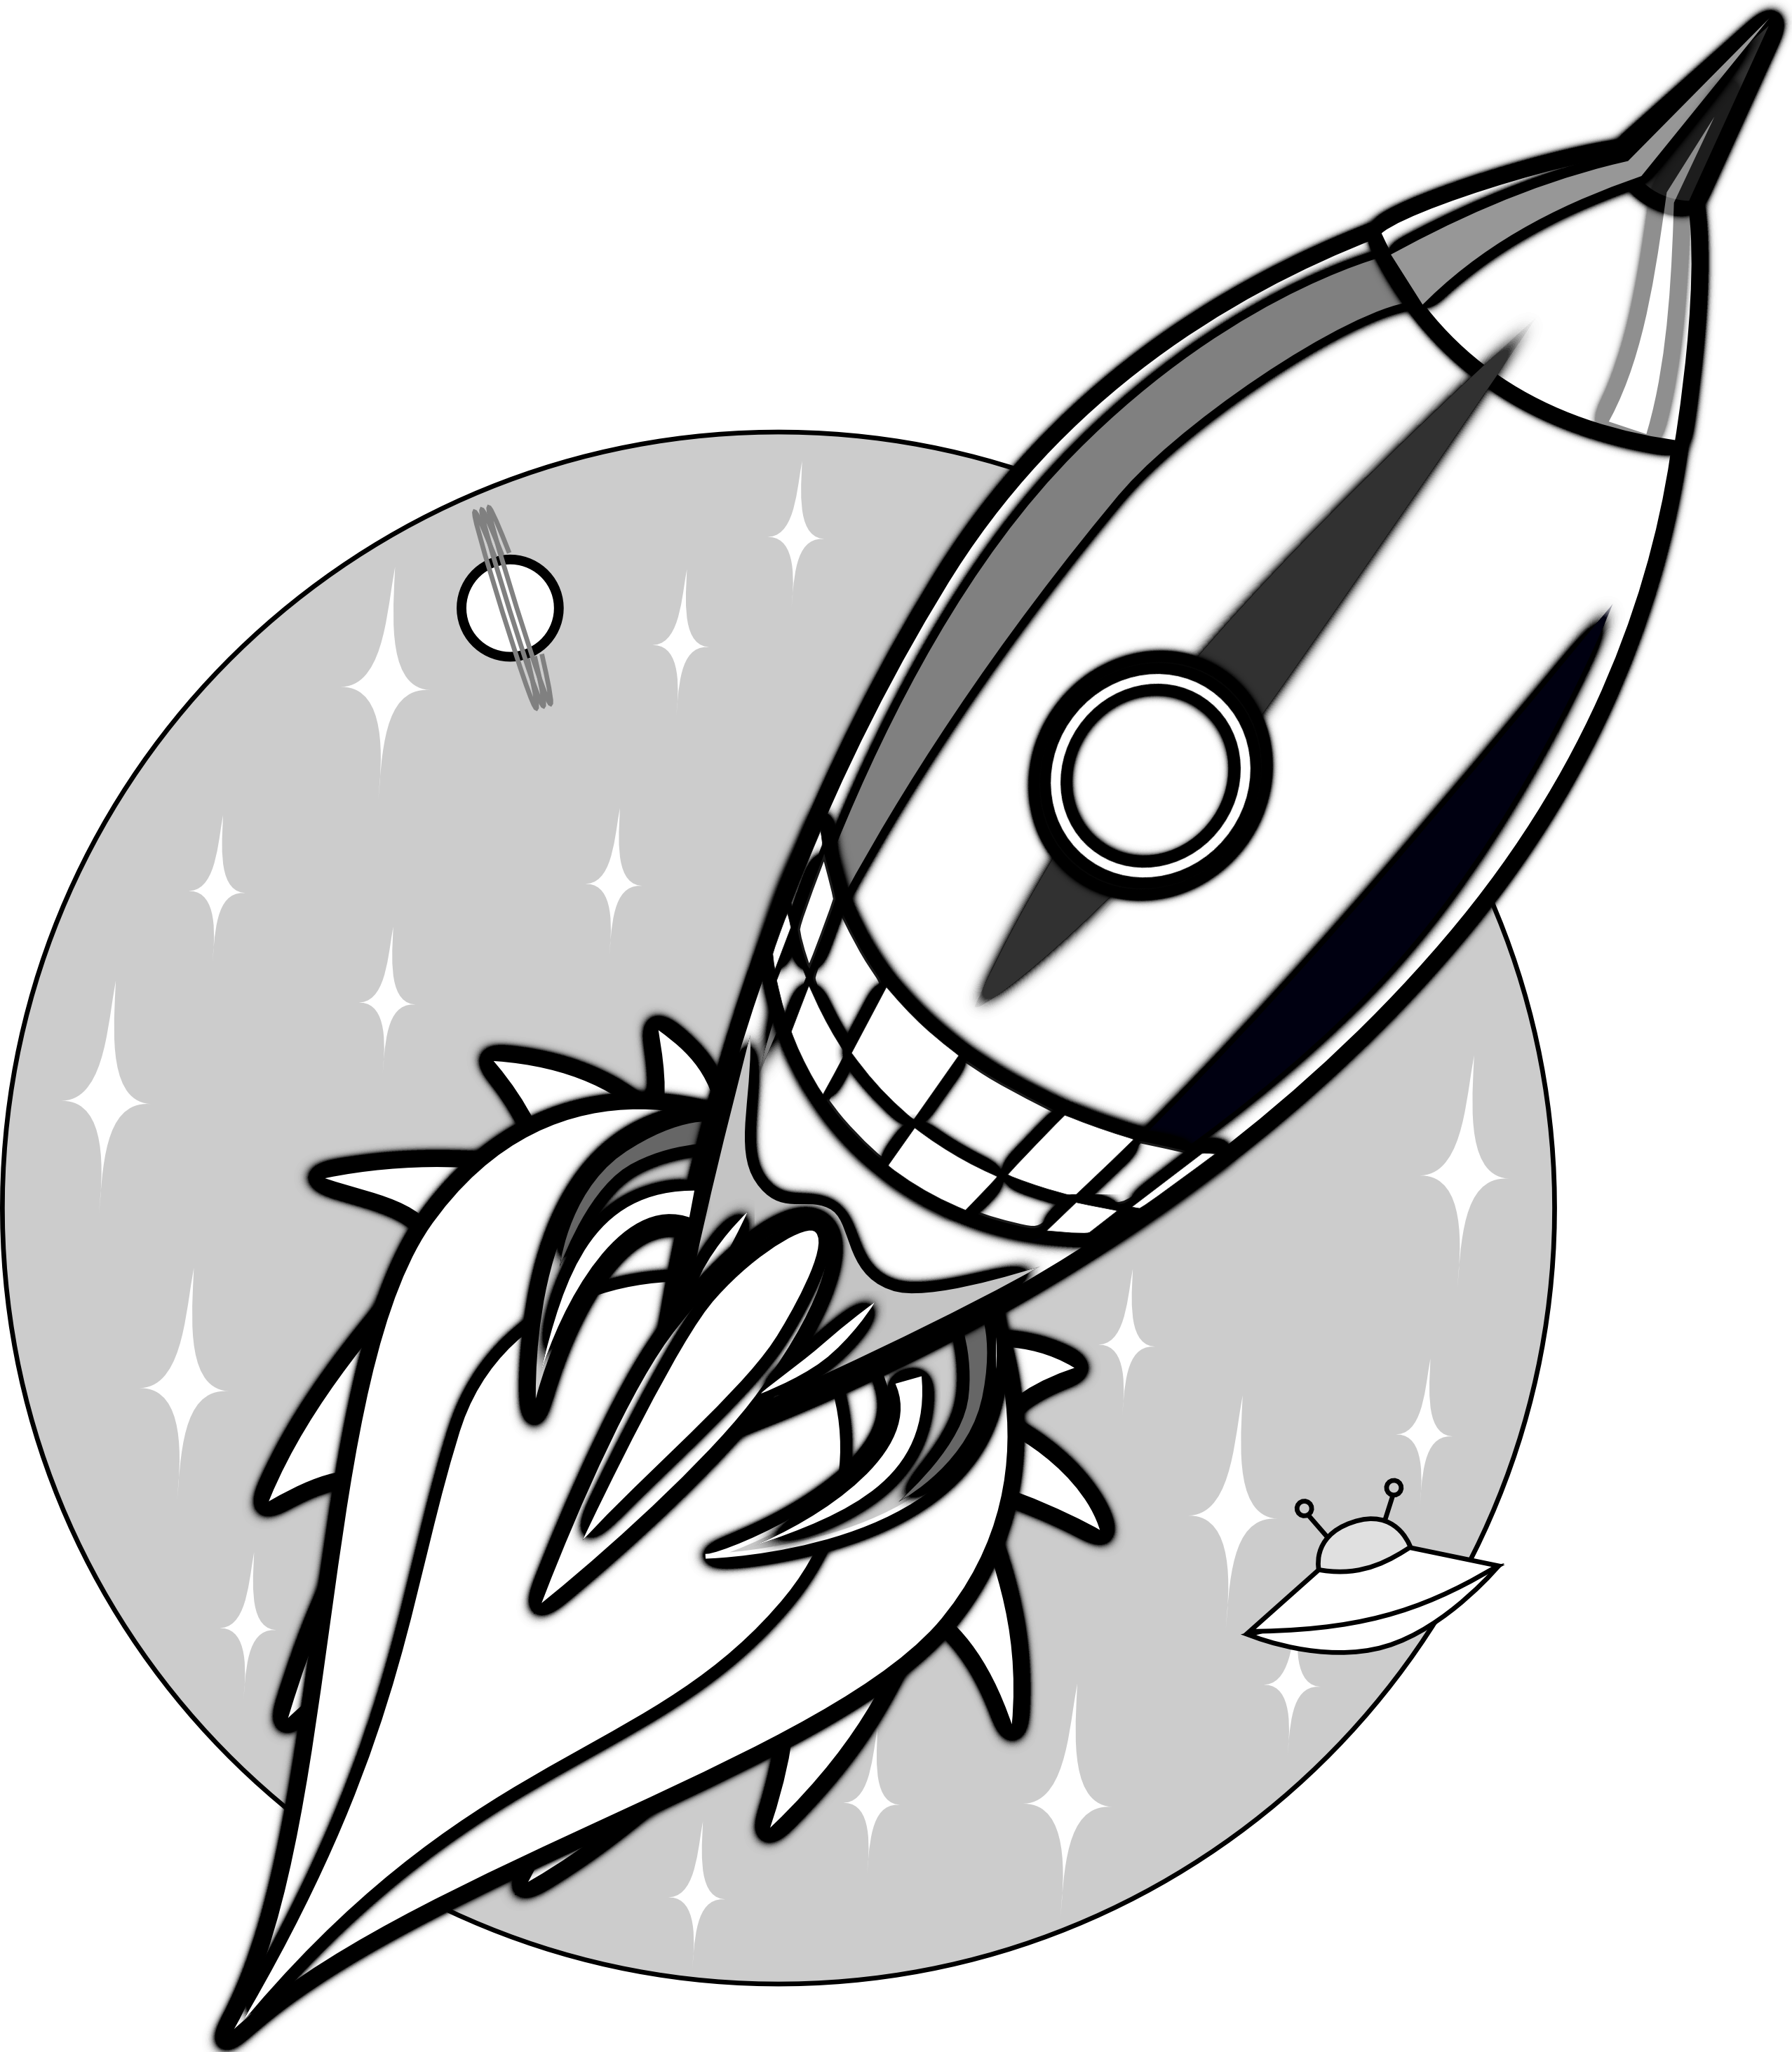 image Missile vector black and white. Retro space rocket tattoo